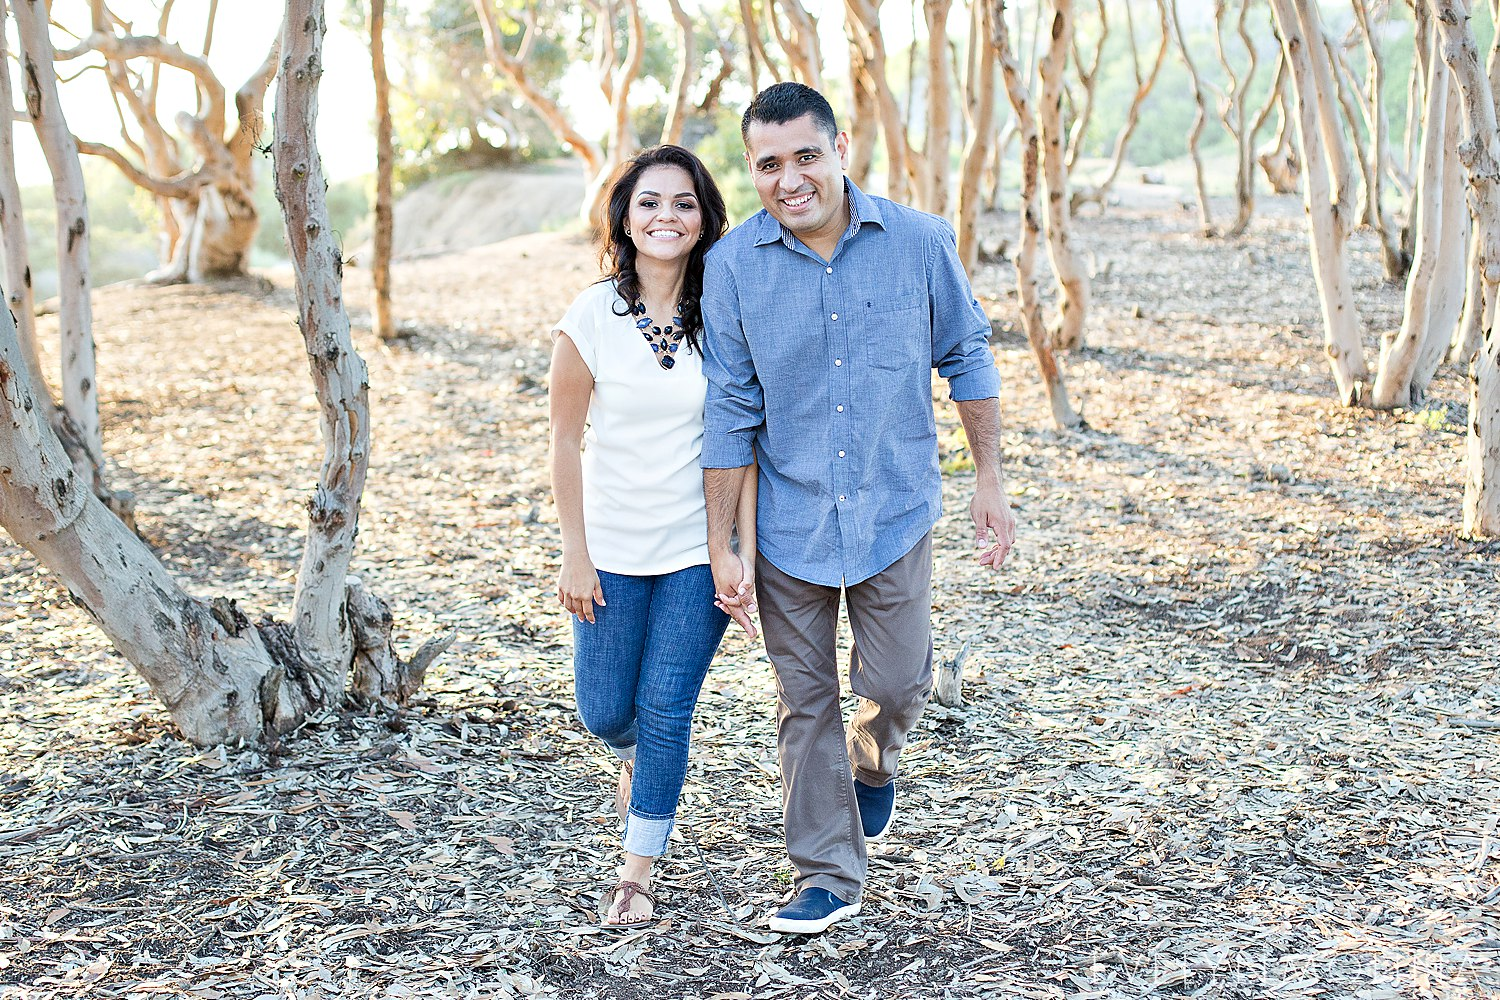 Sunset Cliffs Engagement - Berenice and David_009.jpg